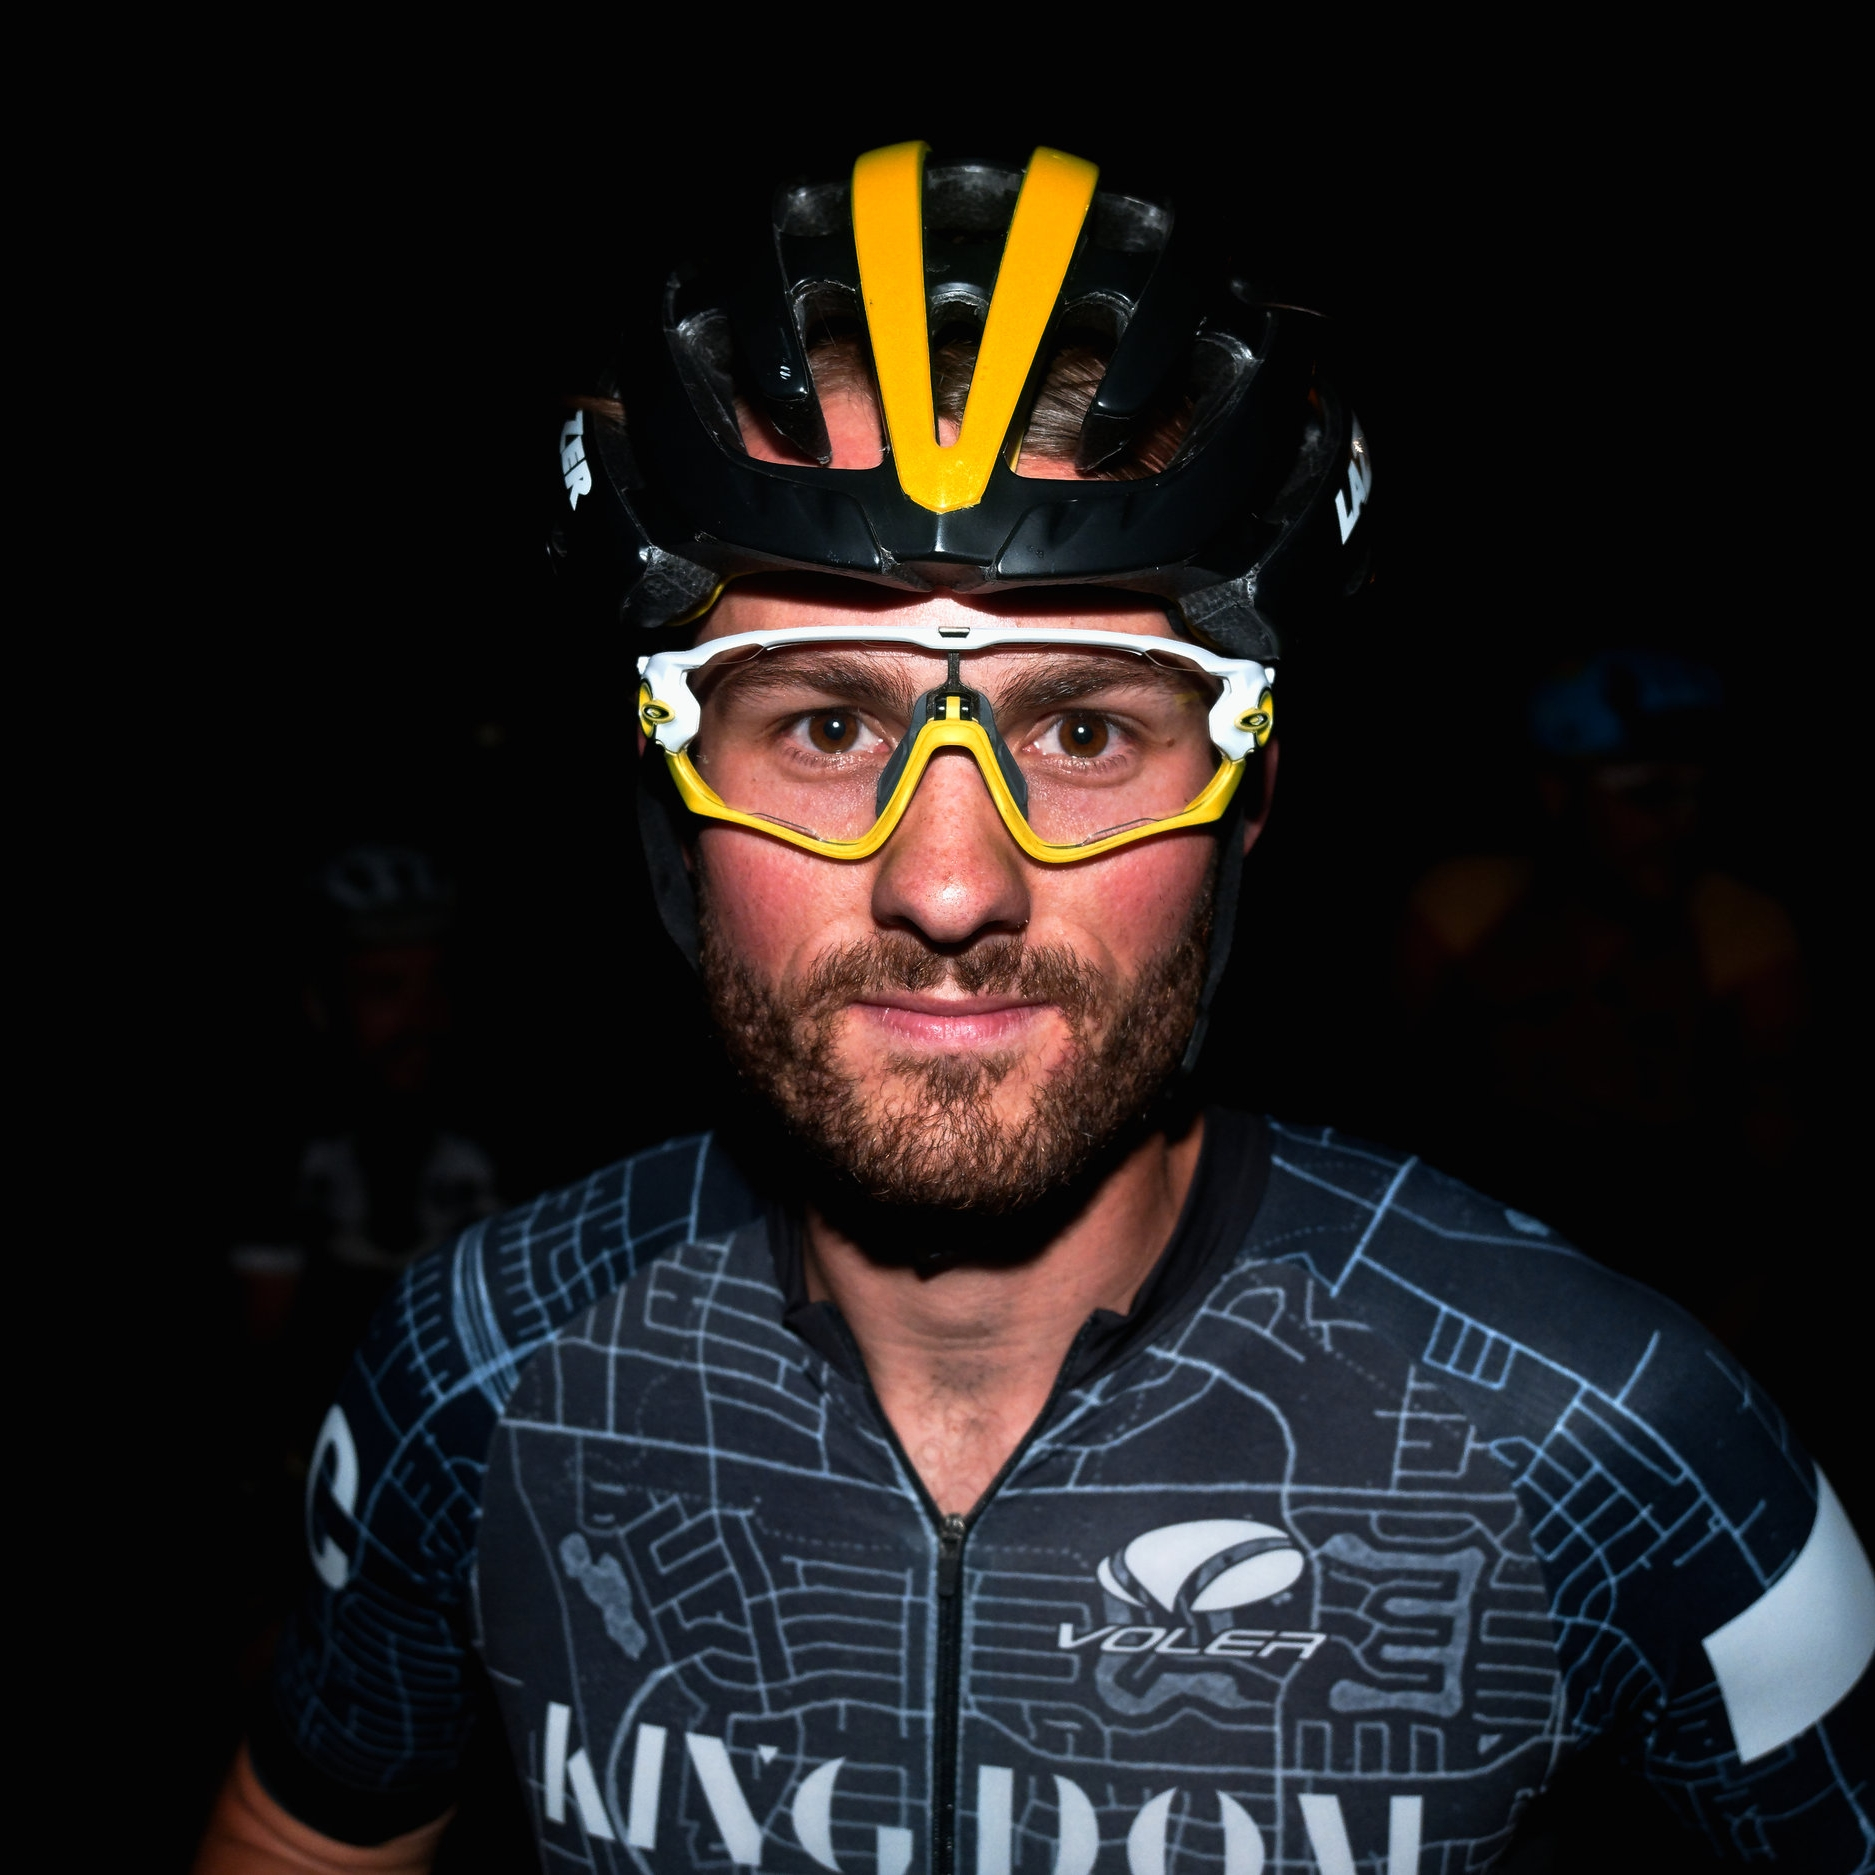 Johnny Corcoran - 26 years oldLeader at Young Life ChurchCat. 2 Road Cyclist for Bike Accident AttorneysFrom Tempe, AZ.